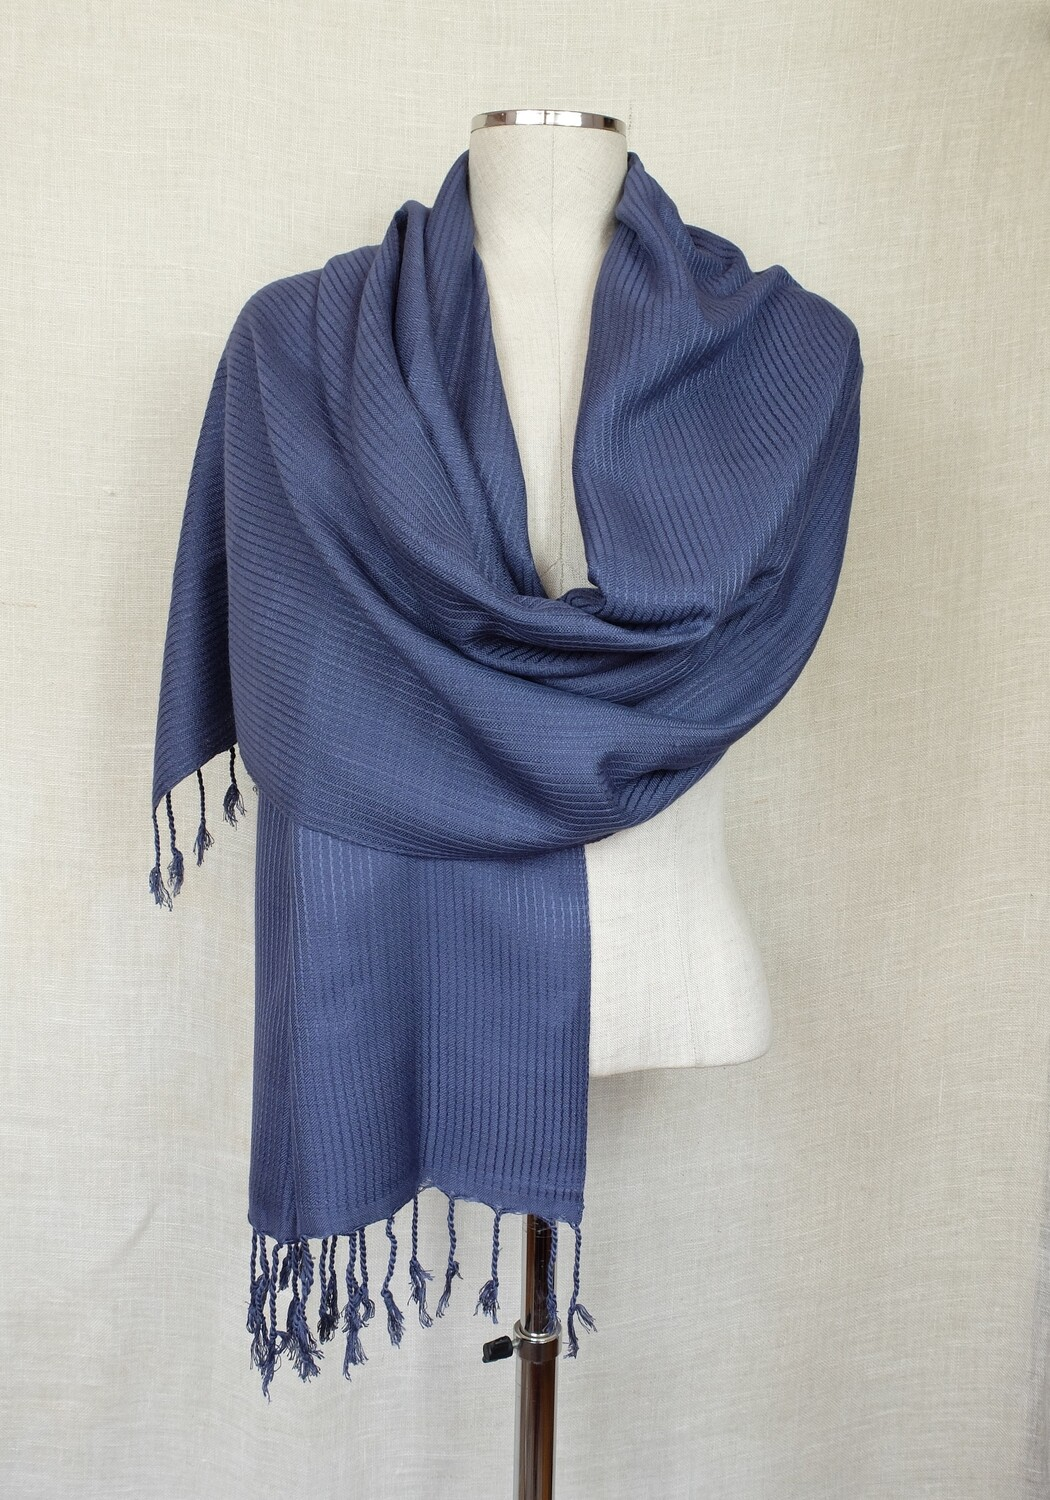 Dafayer Grey Blue Shawl